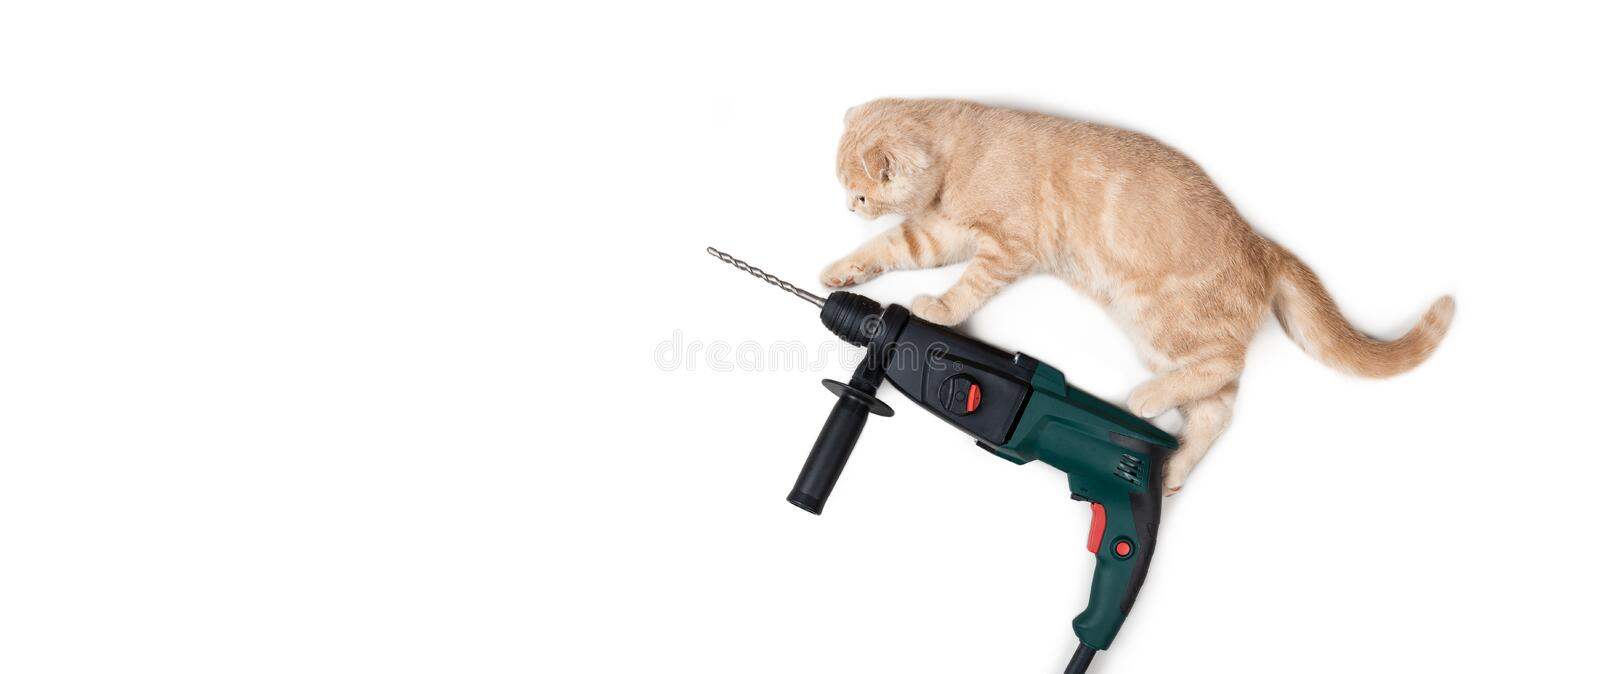 Fanny cat on the puncher isolated on white background. Construction equipment. Kitten with a drill. Building concept. For banner stock images